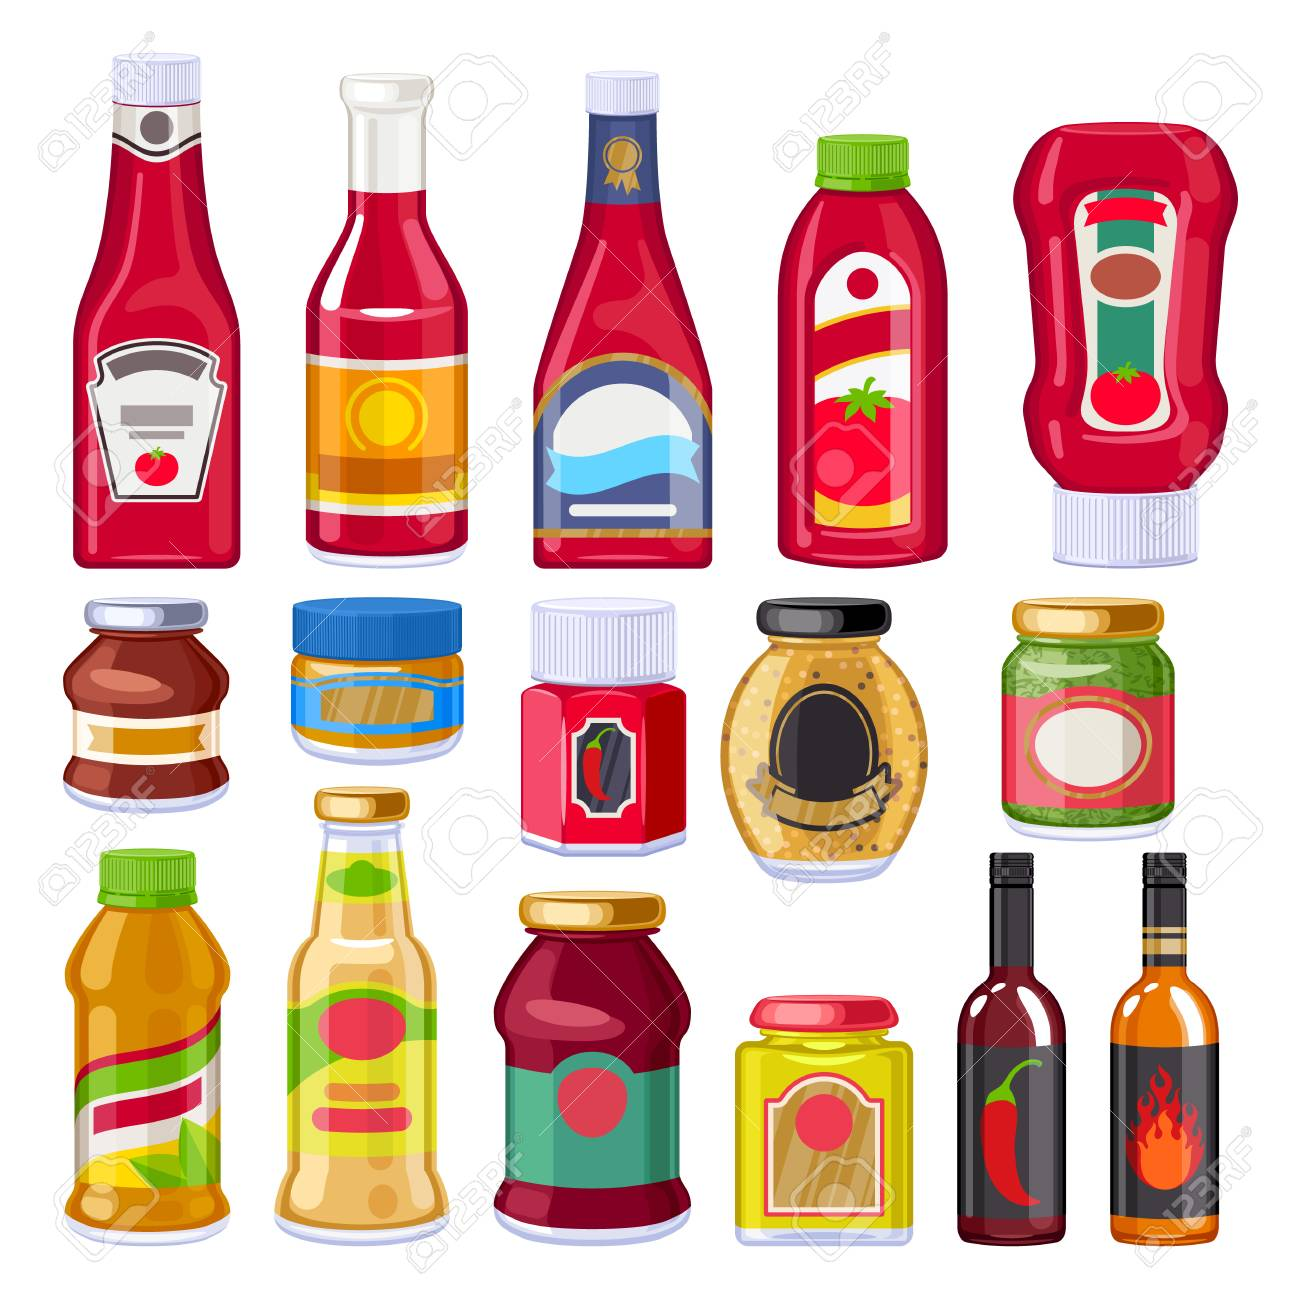 Sauces and dressings bottles set. - 101298420